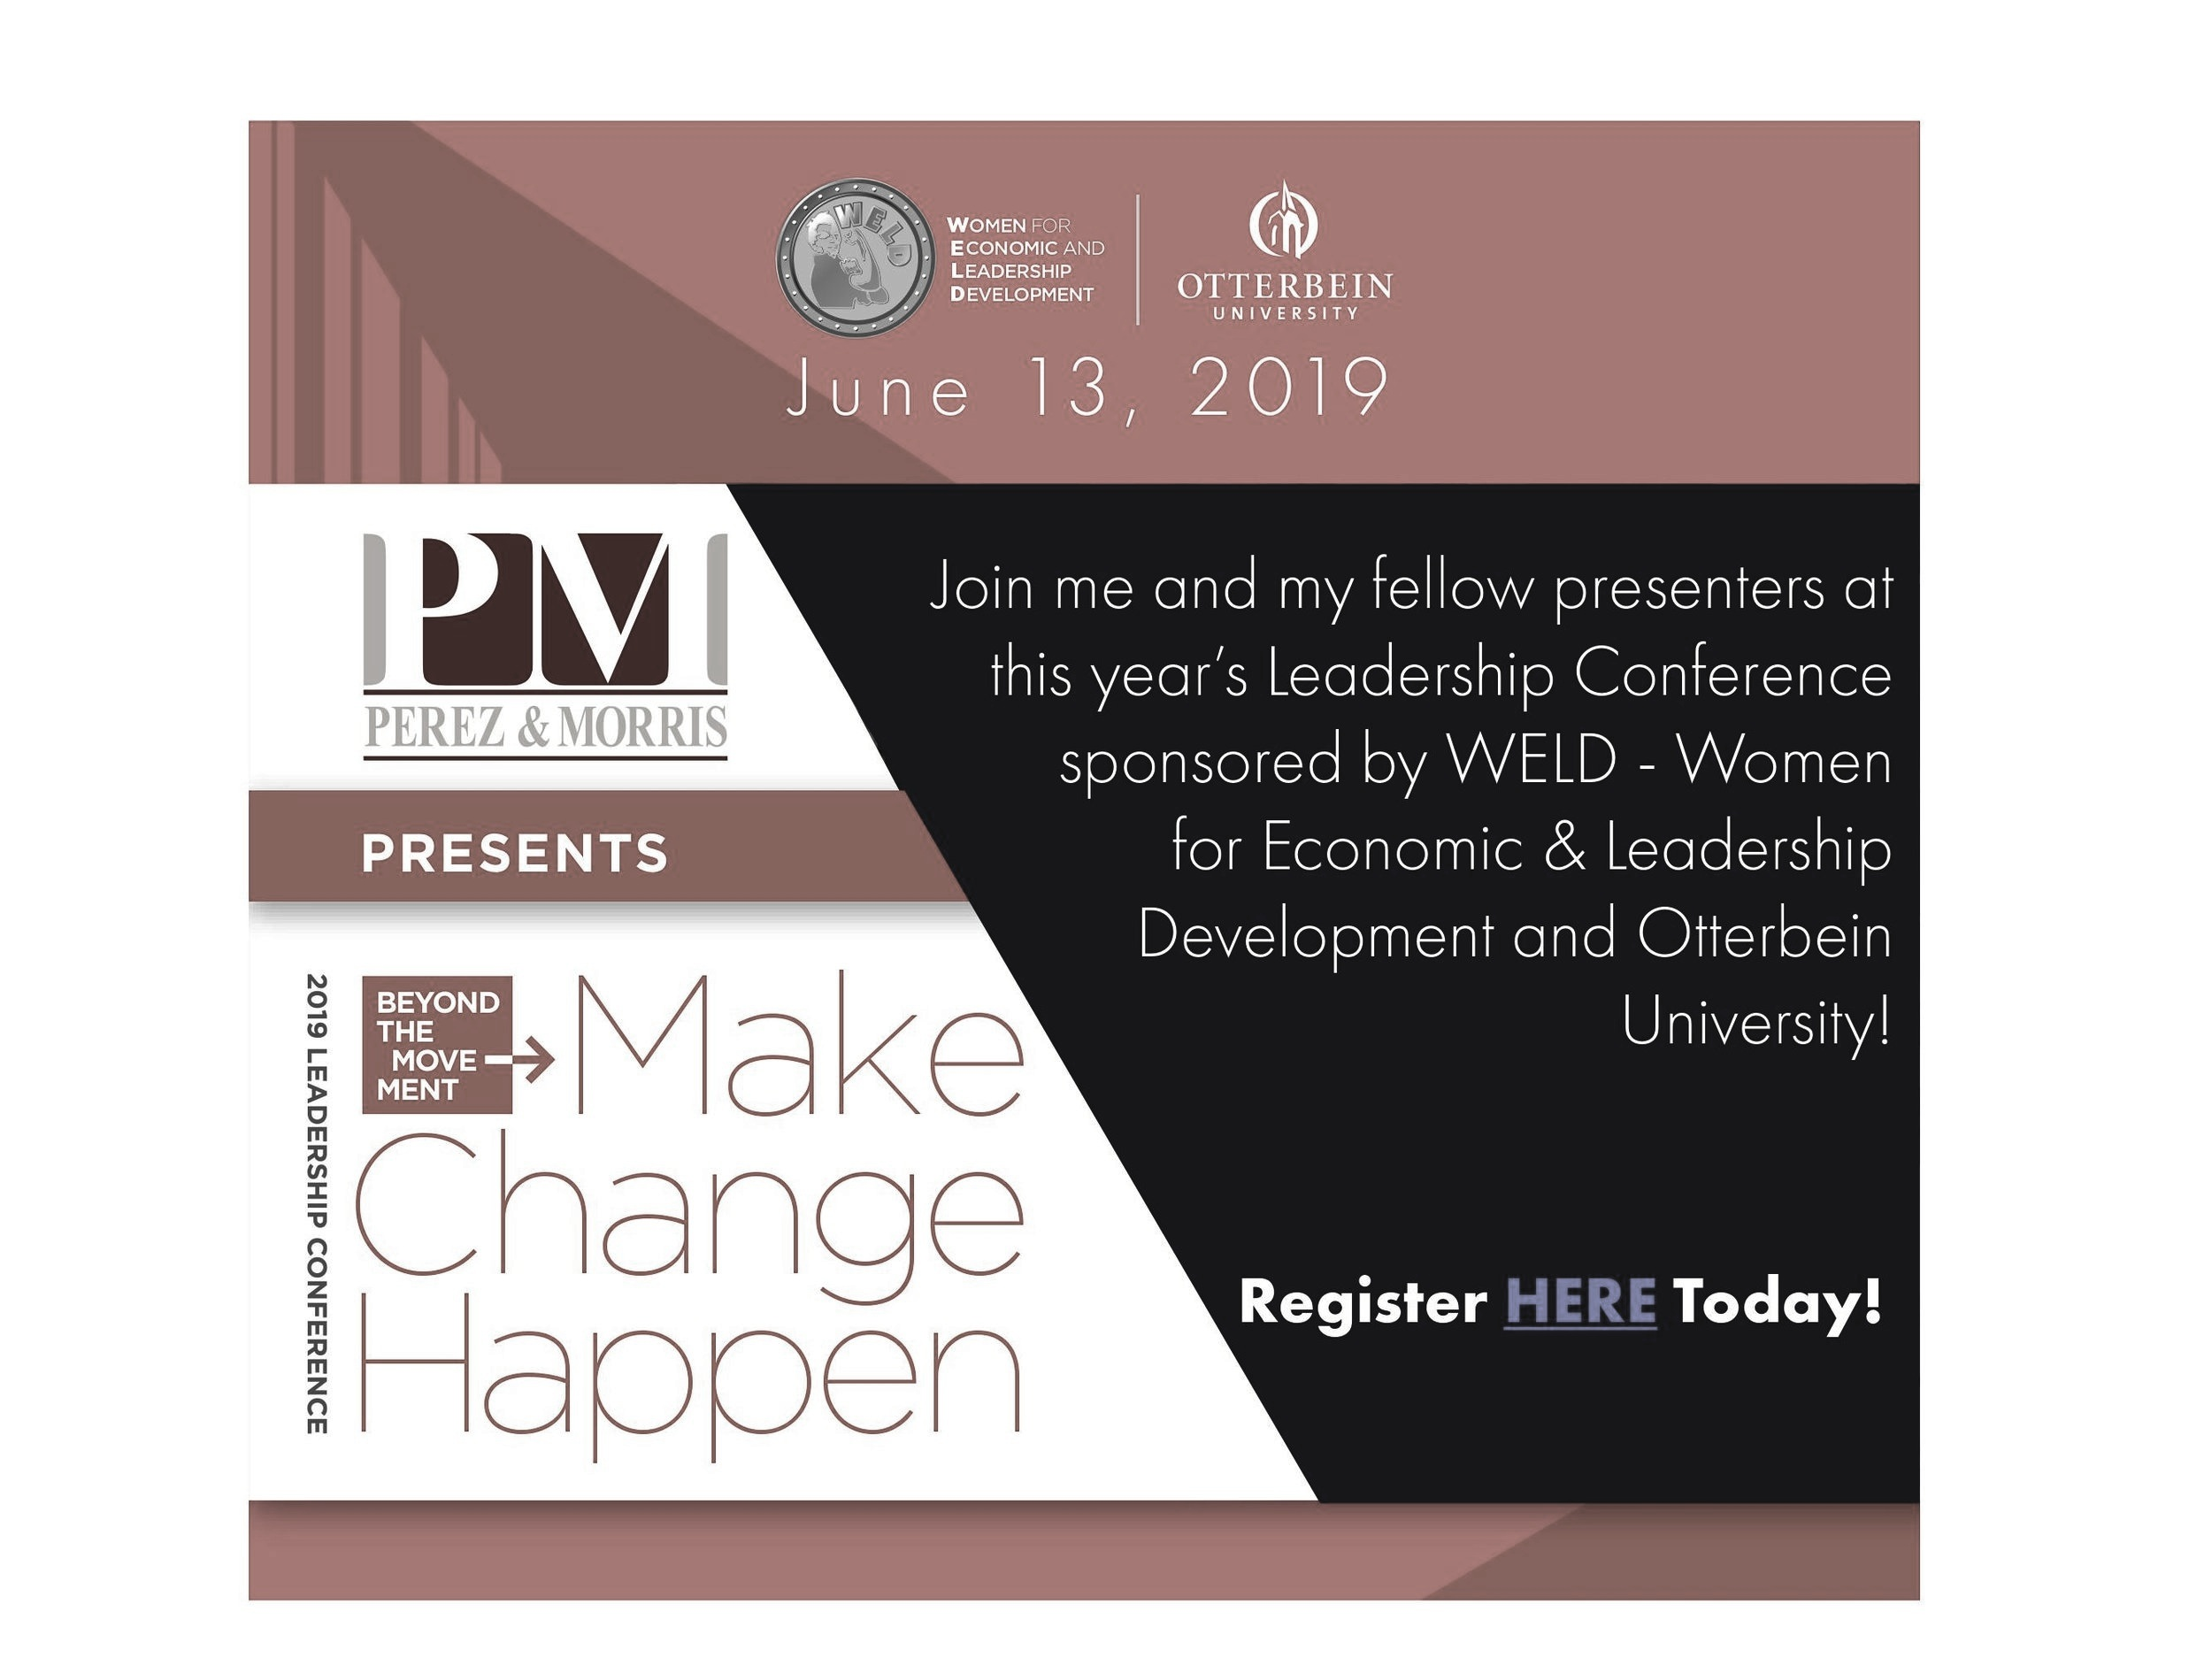 My fellow presenters and I were honored to speak at the WELD conference filled with amazing women who are making change happen.